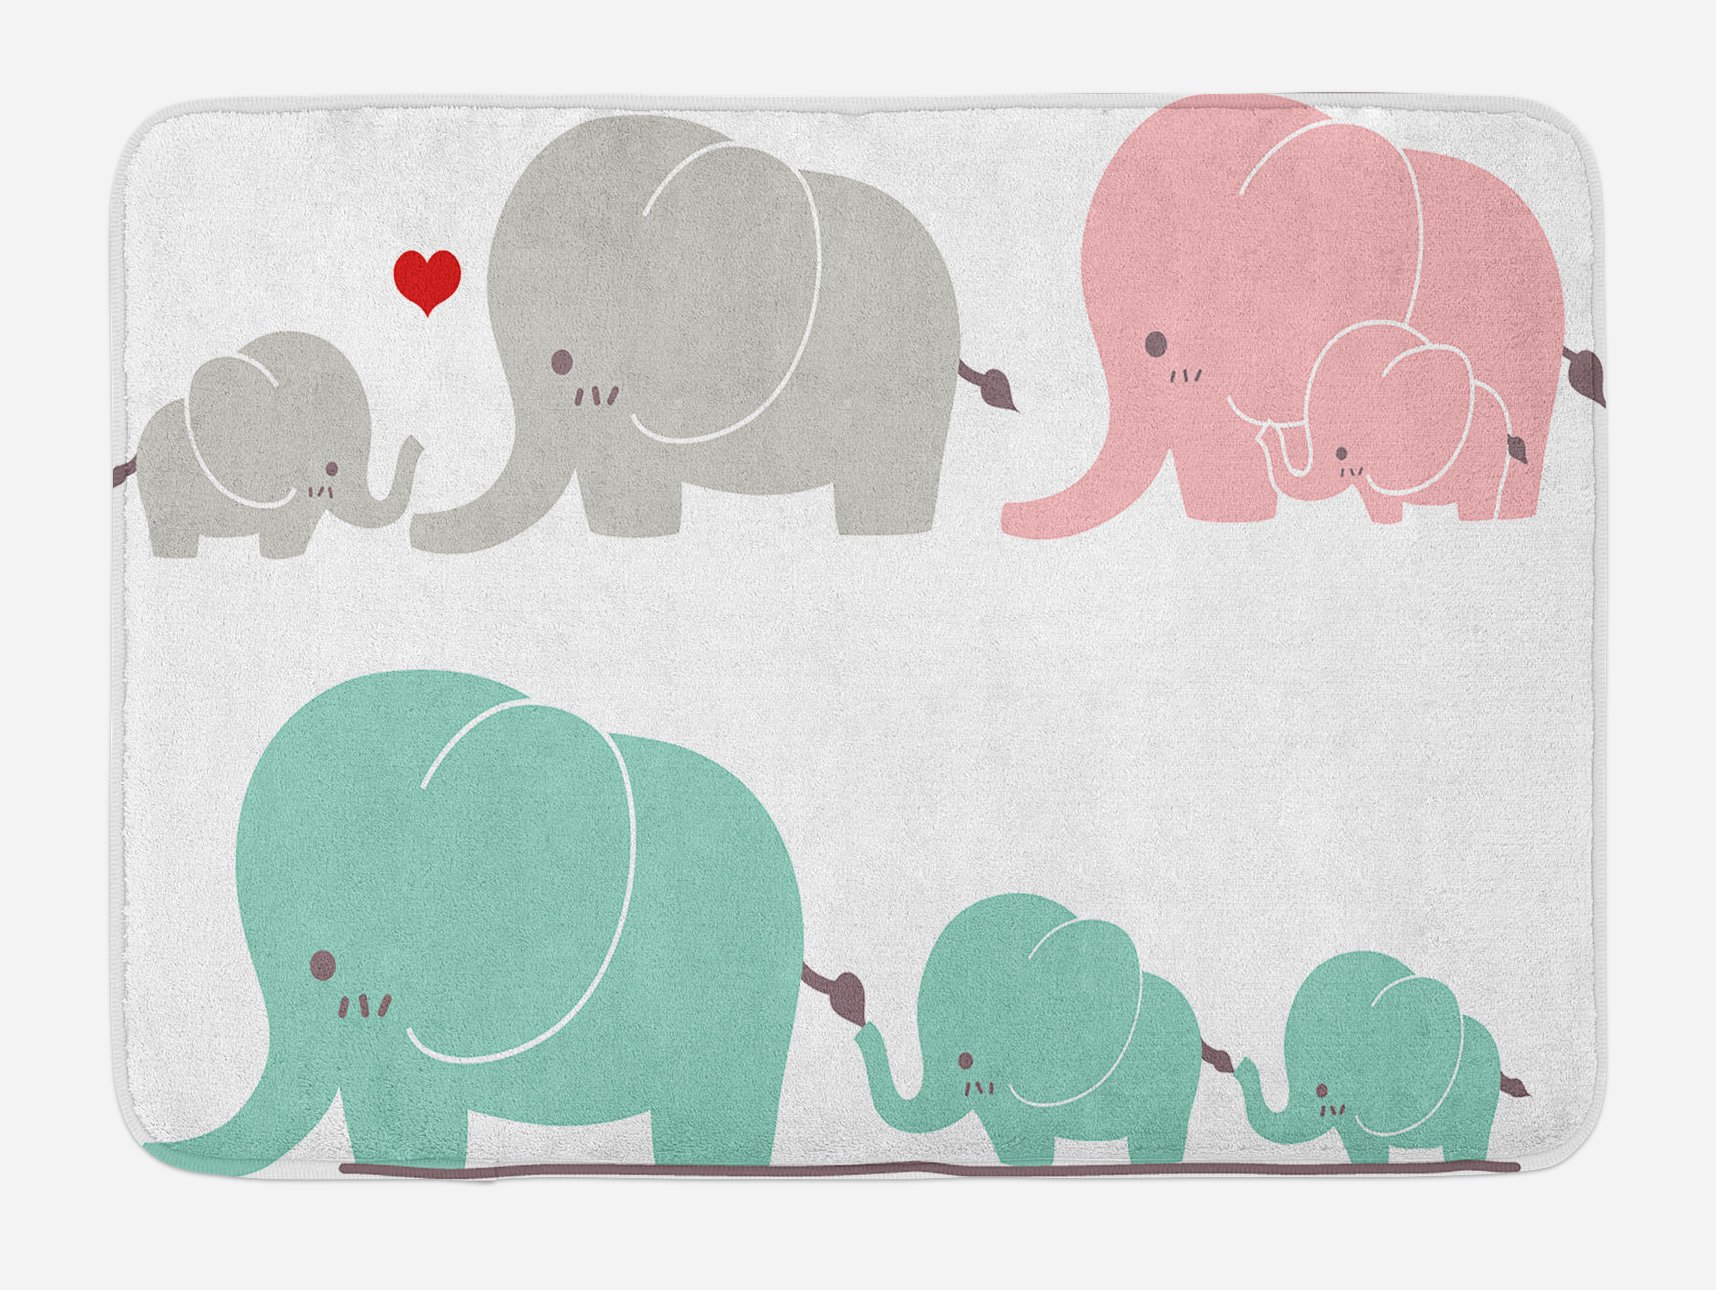 Ambesonne Nursery Bath Mat, Family Love Theme Cute Sweet Elephants Mother's Day Theme Baby Children, Plush Bathroom Decor Mat with Non Slip Backing, 29.5 W X 17.5 W Inches, Seafoam Pale Pink Gray